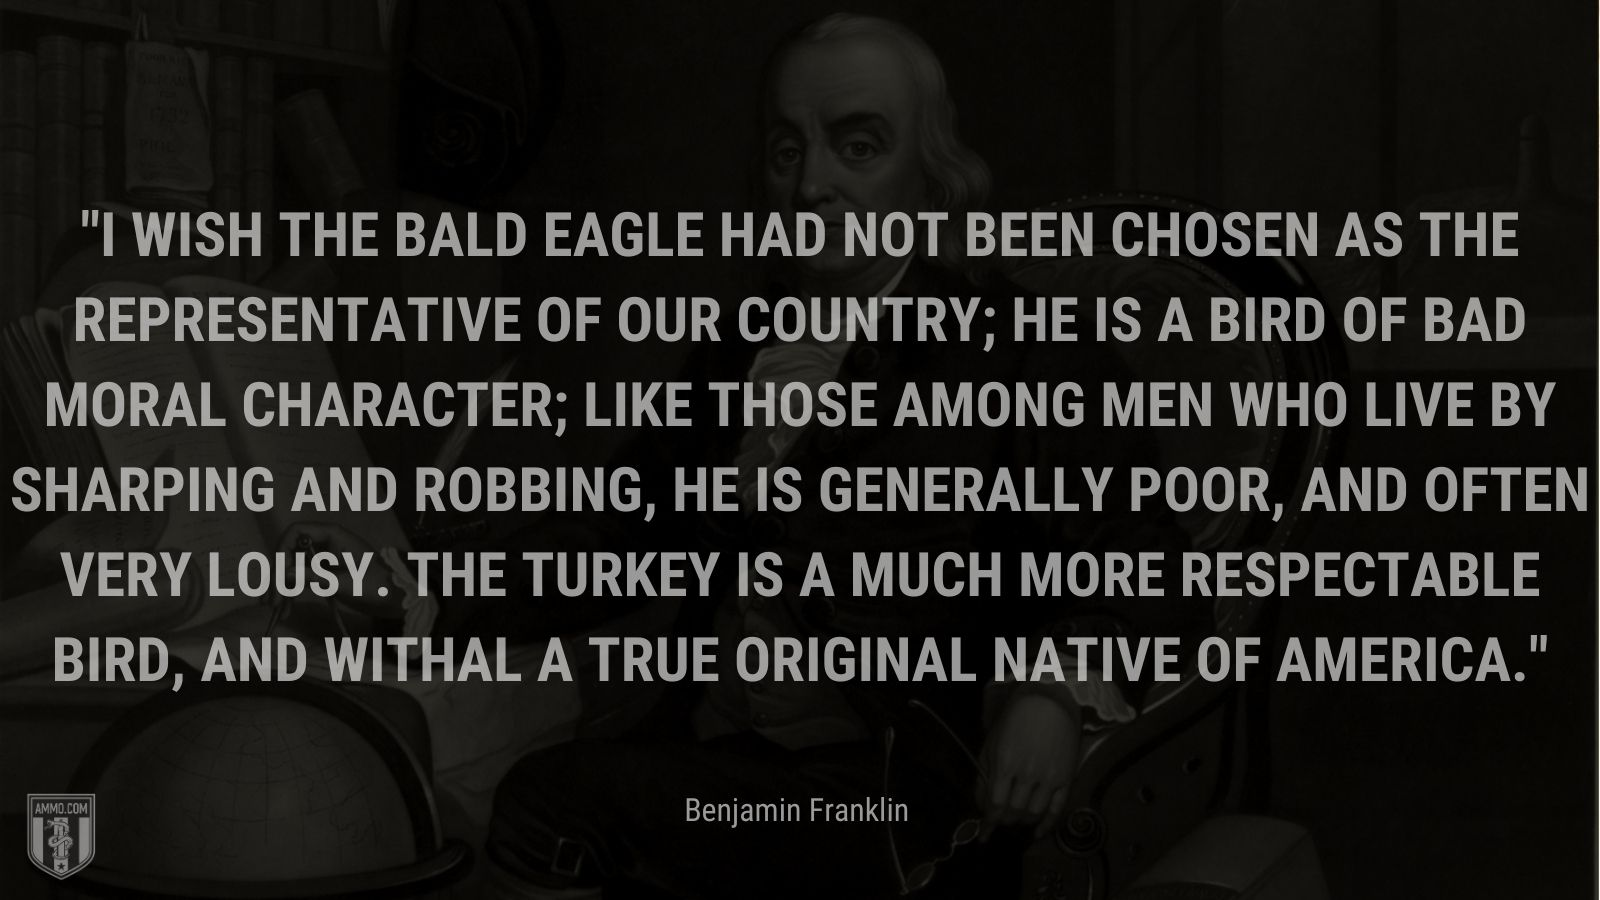 """""""I wish the bald eagle had not been chosen as the representative of our country; he is a bird of bad moral character; like those among men who live by sharping and robbing, he is generally poor, and often very lousy. The turkey is a much more respectable bird, and withal a true original native of America."""" - Benjamin Franklin"""